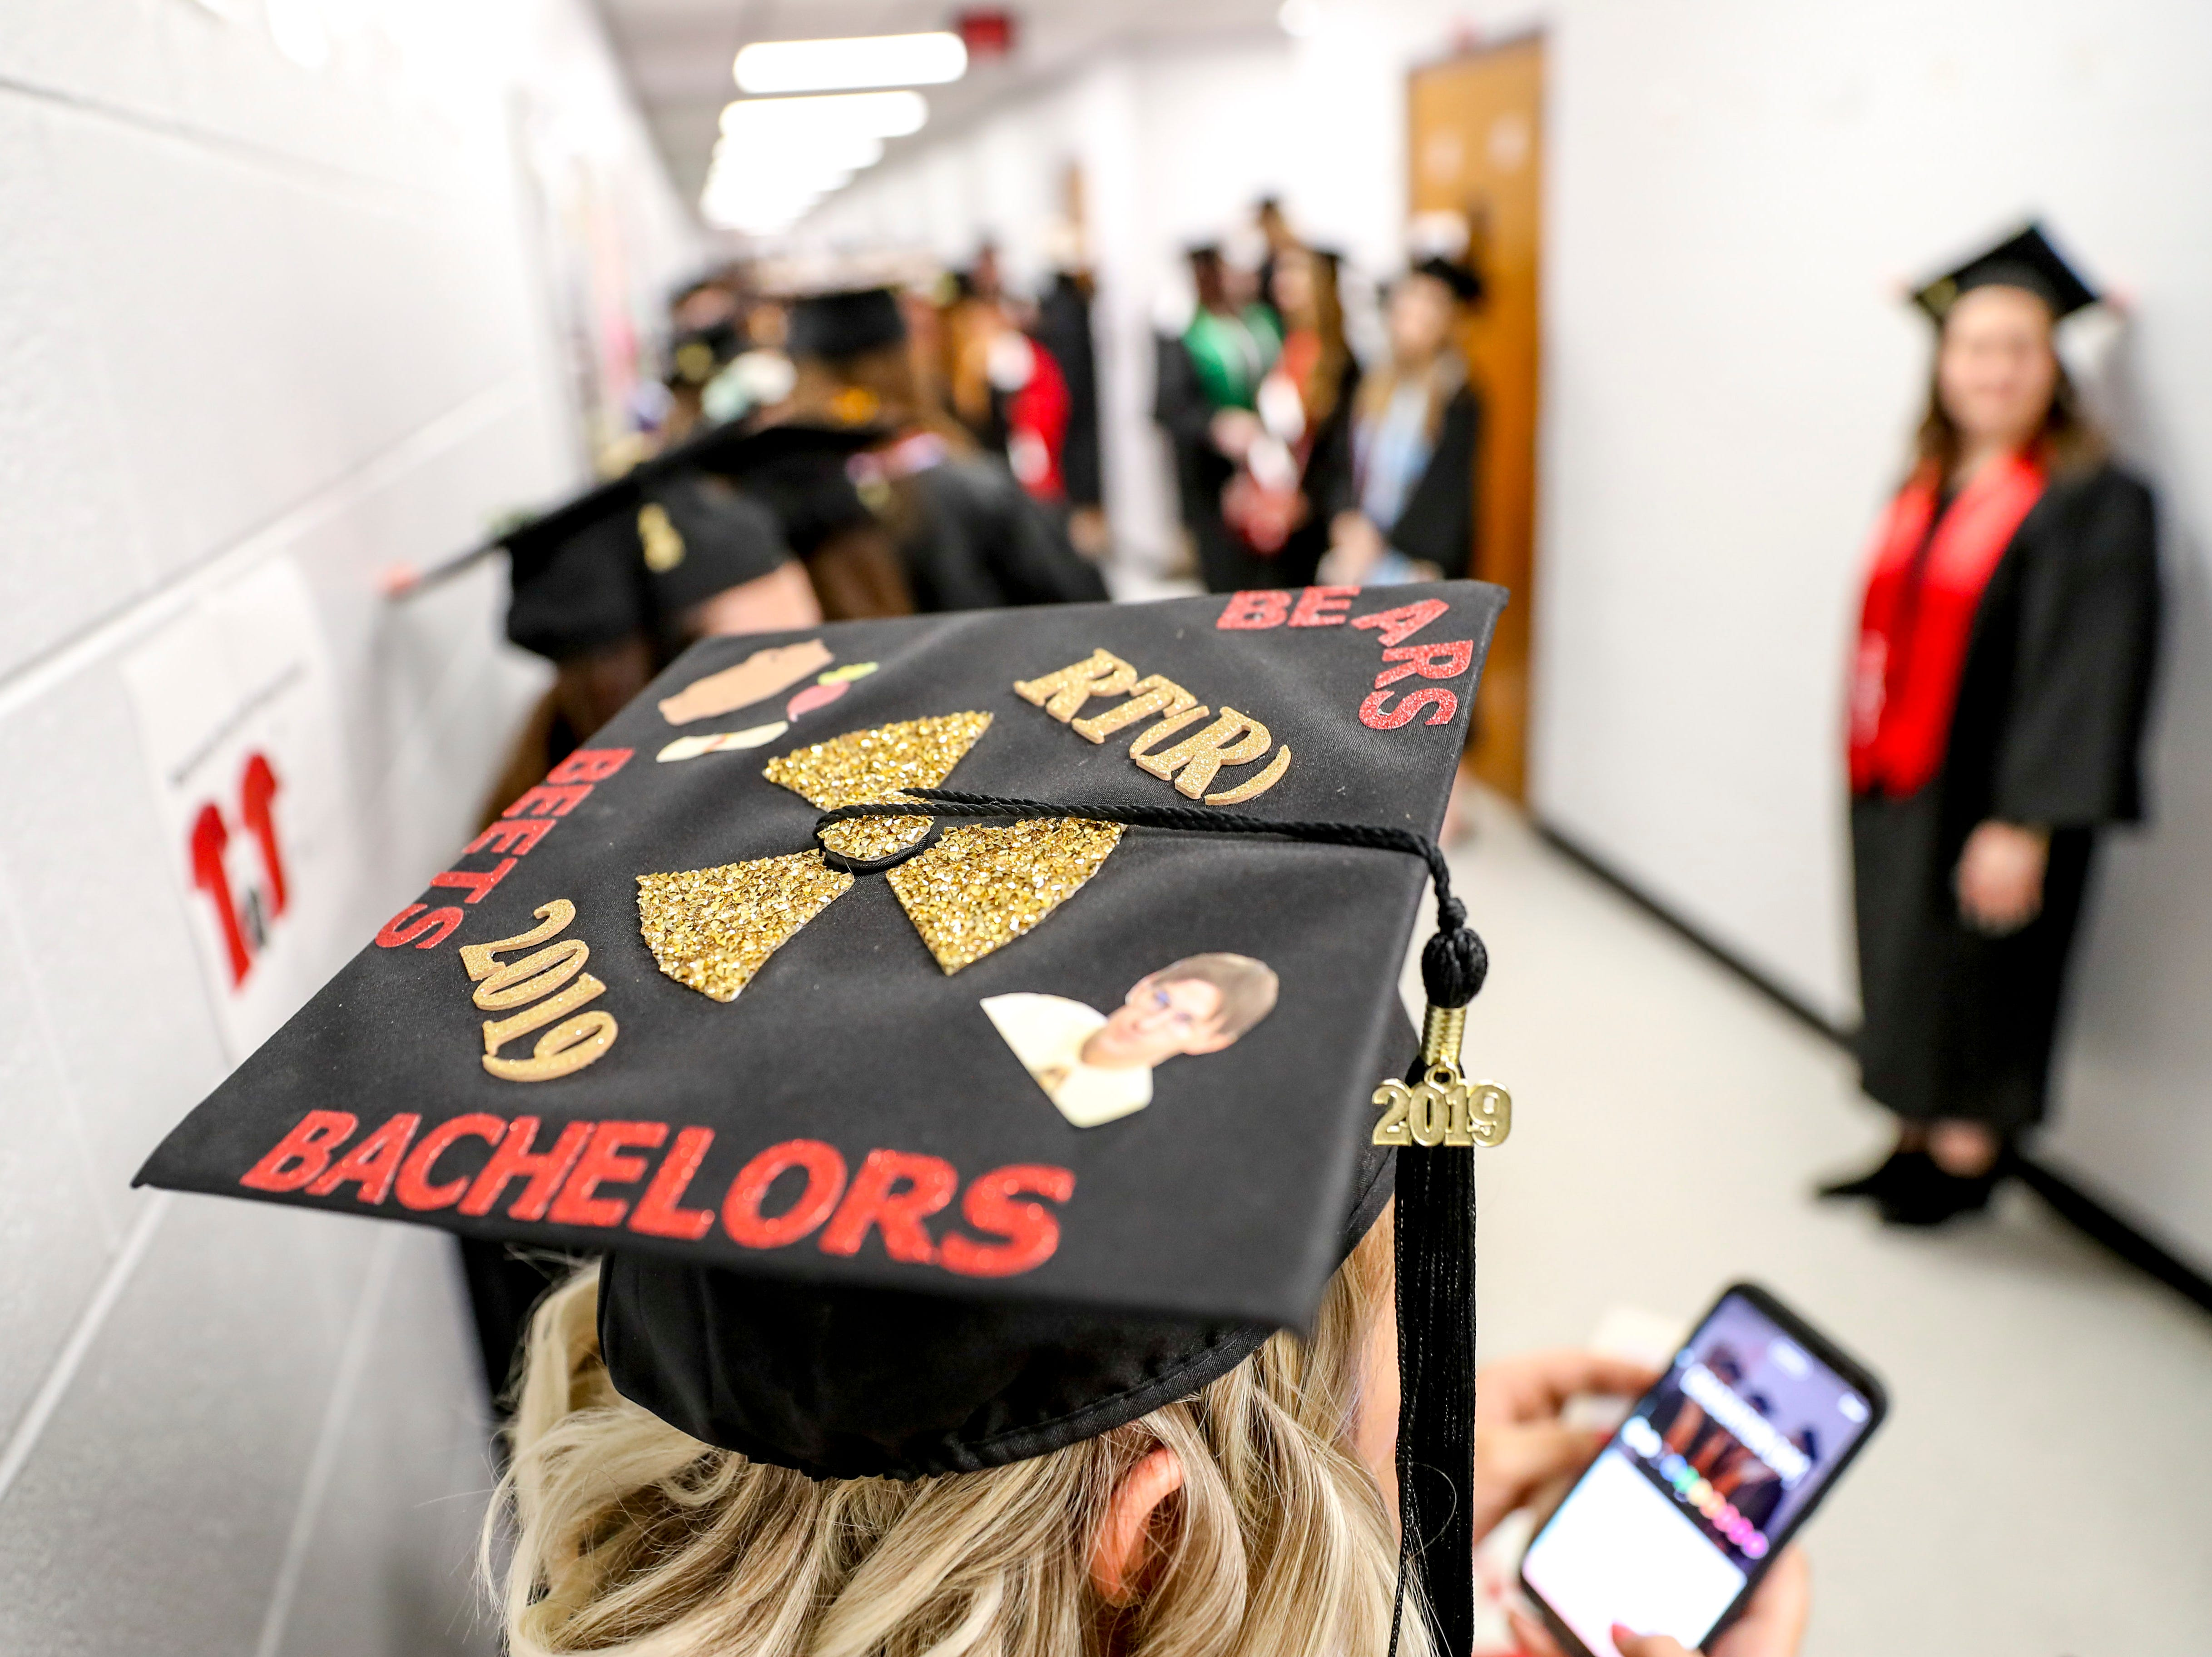 Decorated caps cover most of the heads at the Austin Peay spring commencement ceremony 2019 for College of Business and College of STEM at Winfield Dunn Center in Clarksville, Tenn., on Friday, May 3, 2019.